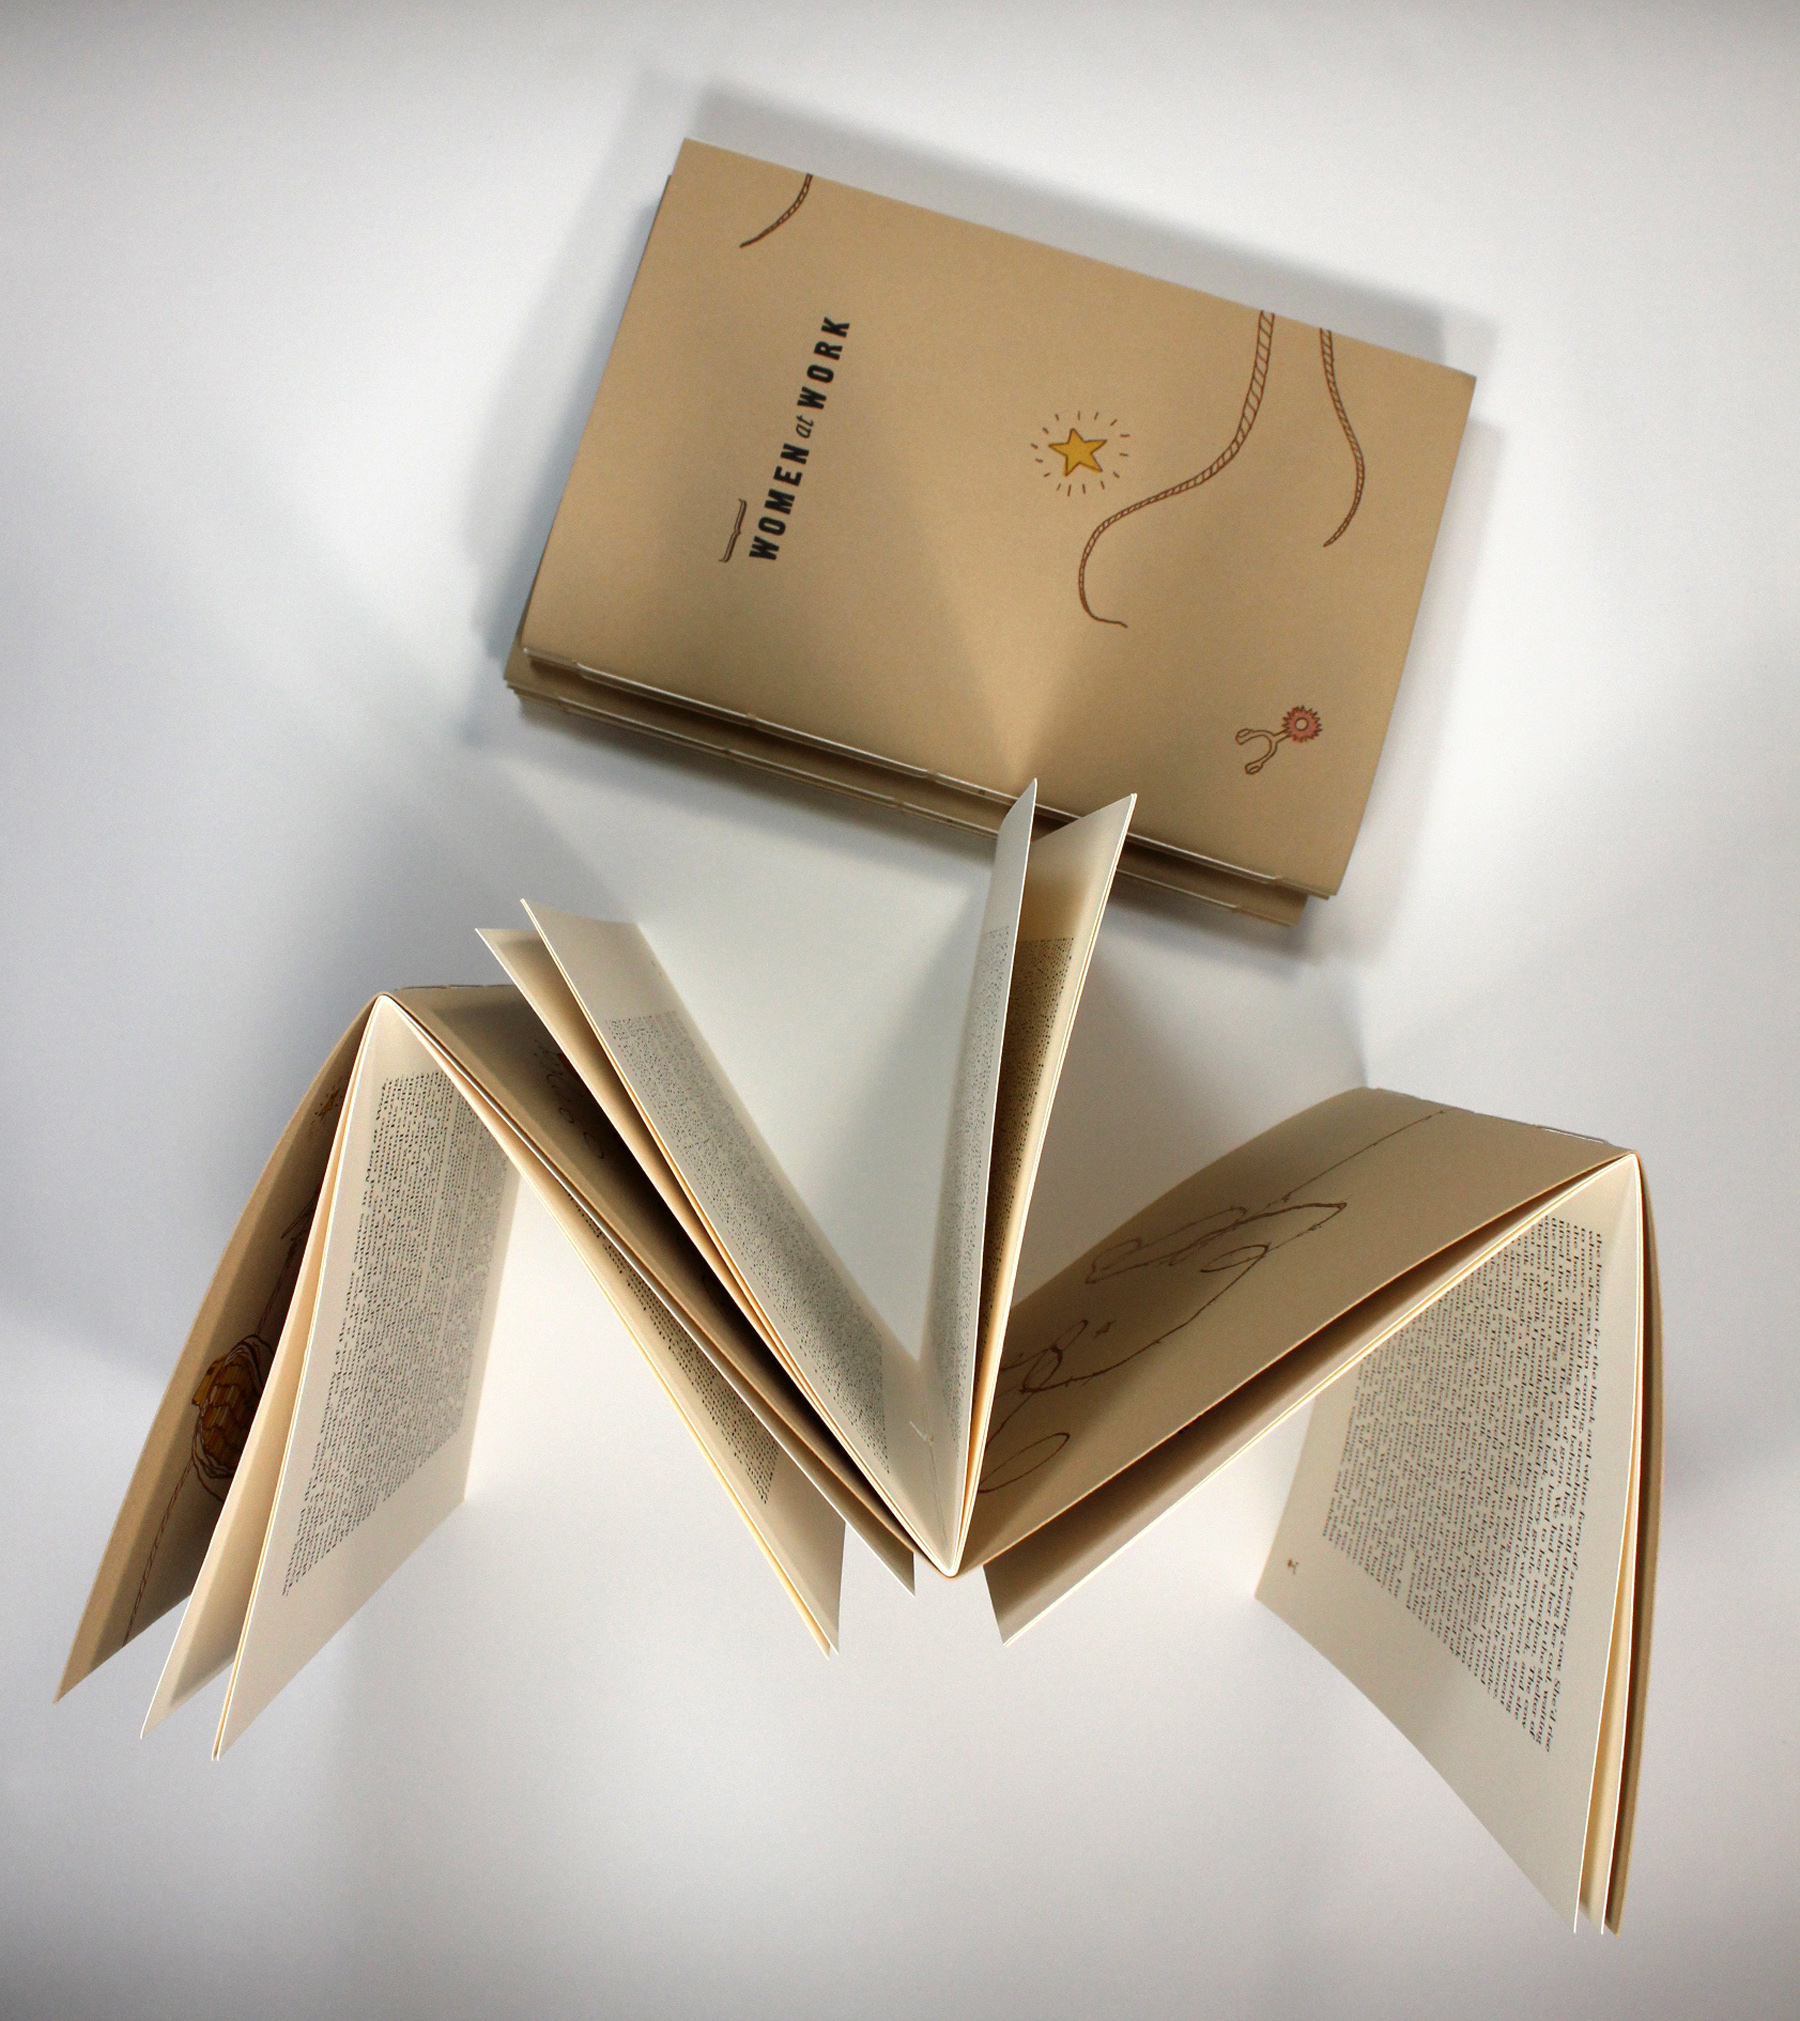 """Hand-crafted copies """"Wo/Men at Work"""" produced by the University of Utah's, Book Art program."""